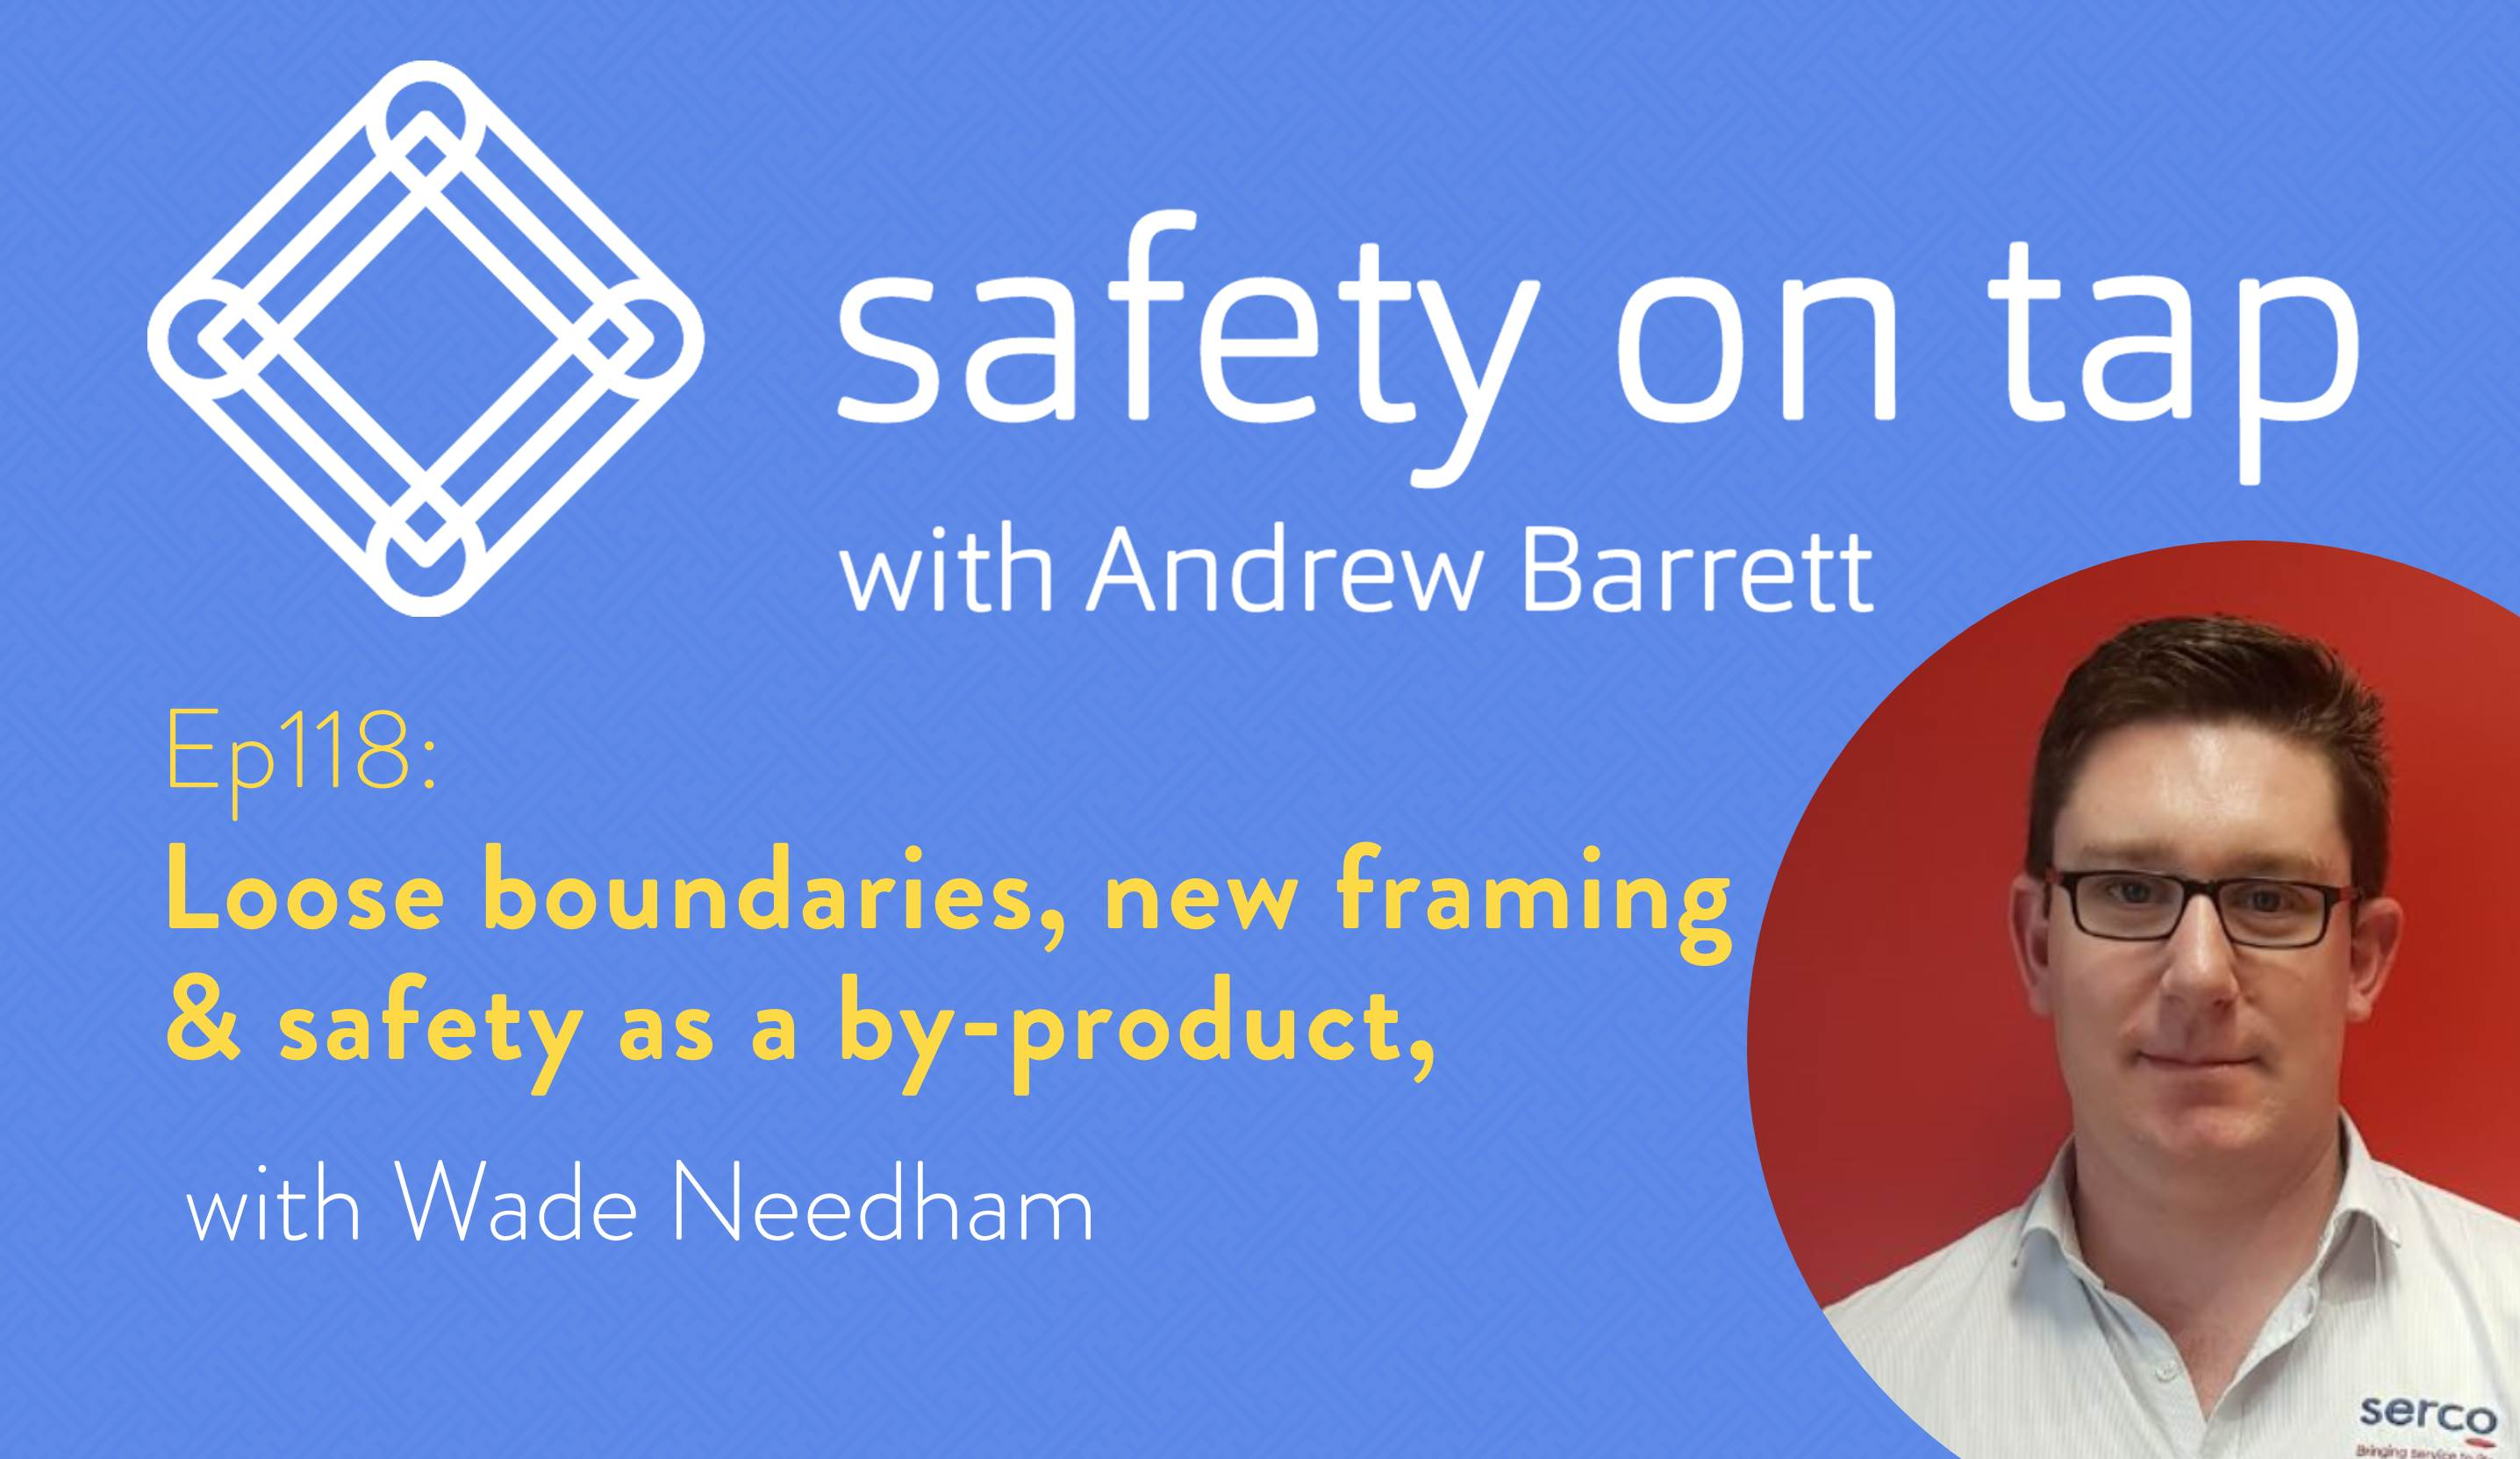 Ep118: Loose boundaries, new framing & safety as a by-product, with Wade Needham